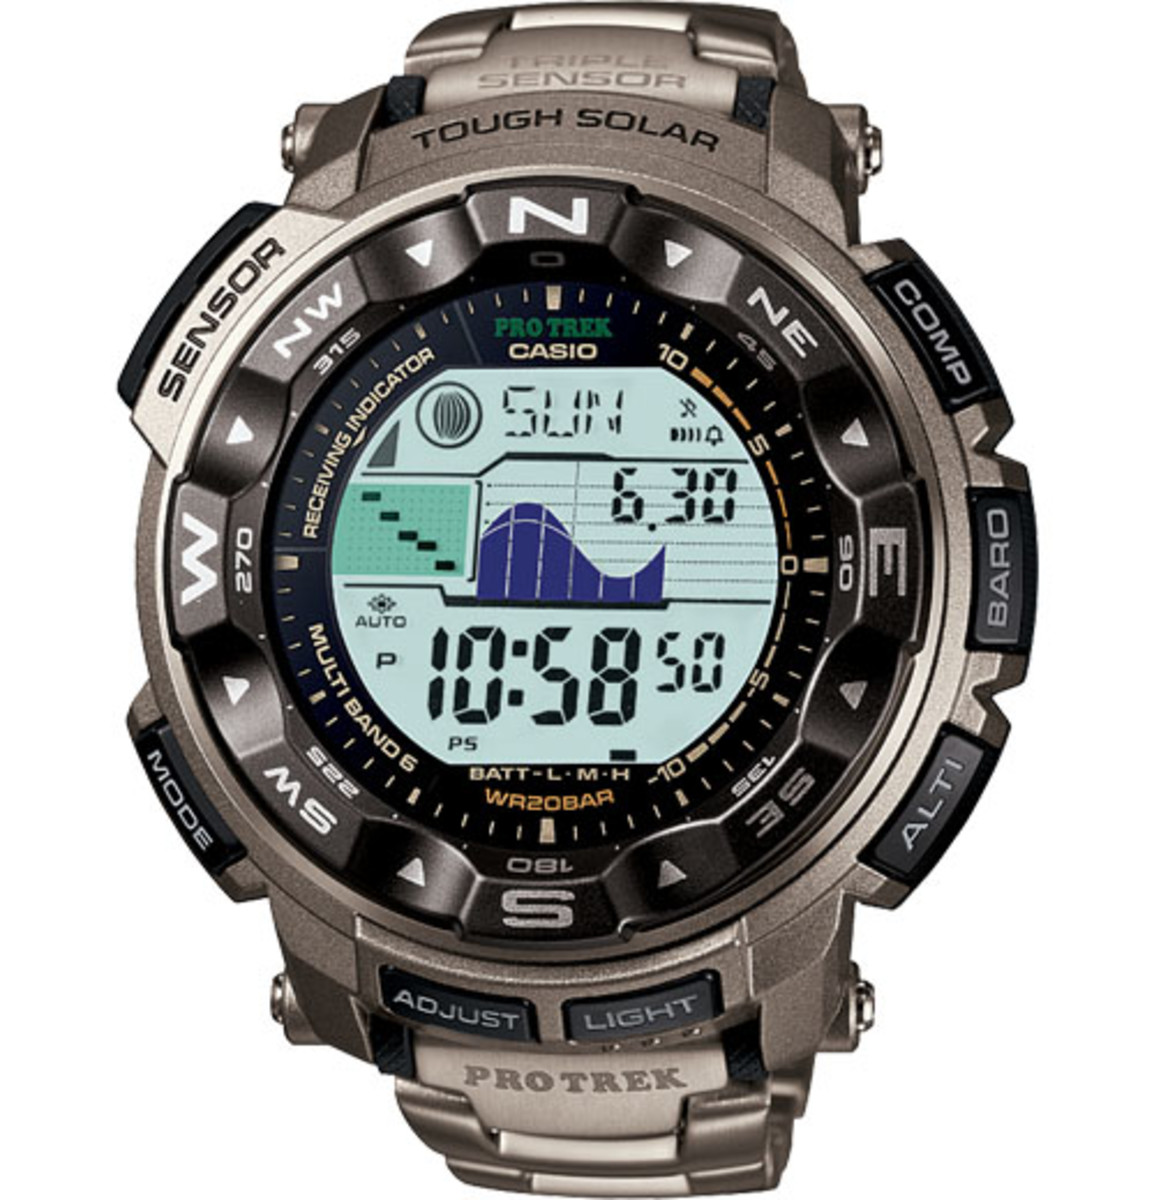 What's Wrong with the Casio PRW2500T-7CR Solar Digital Casual Watch?